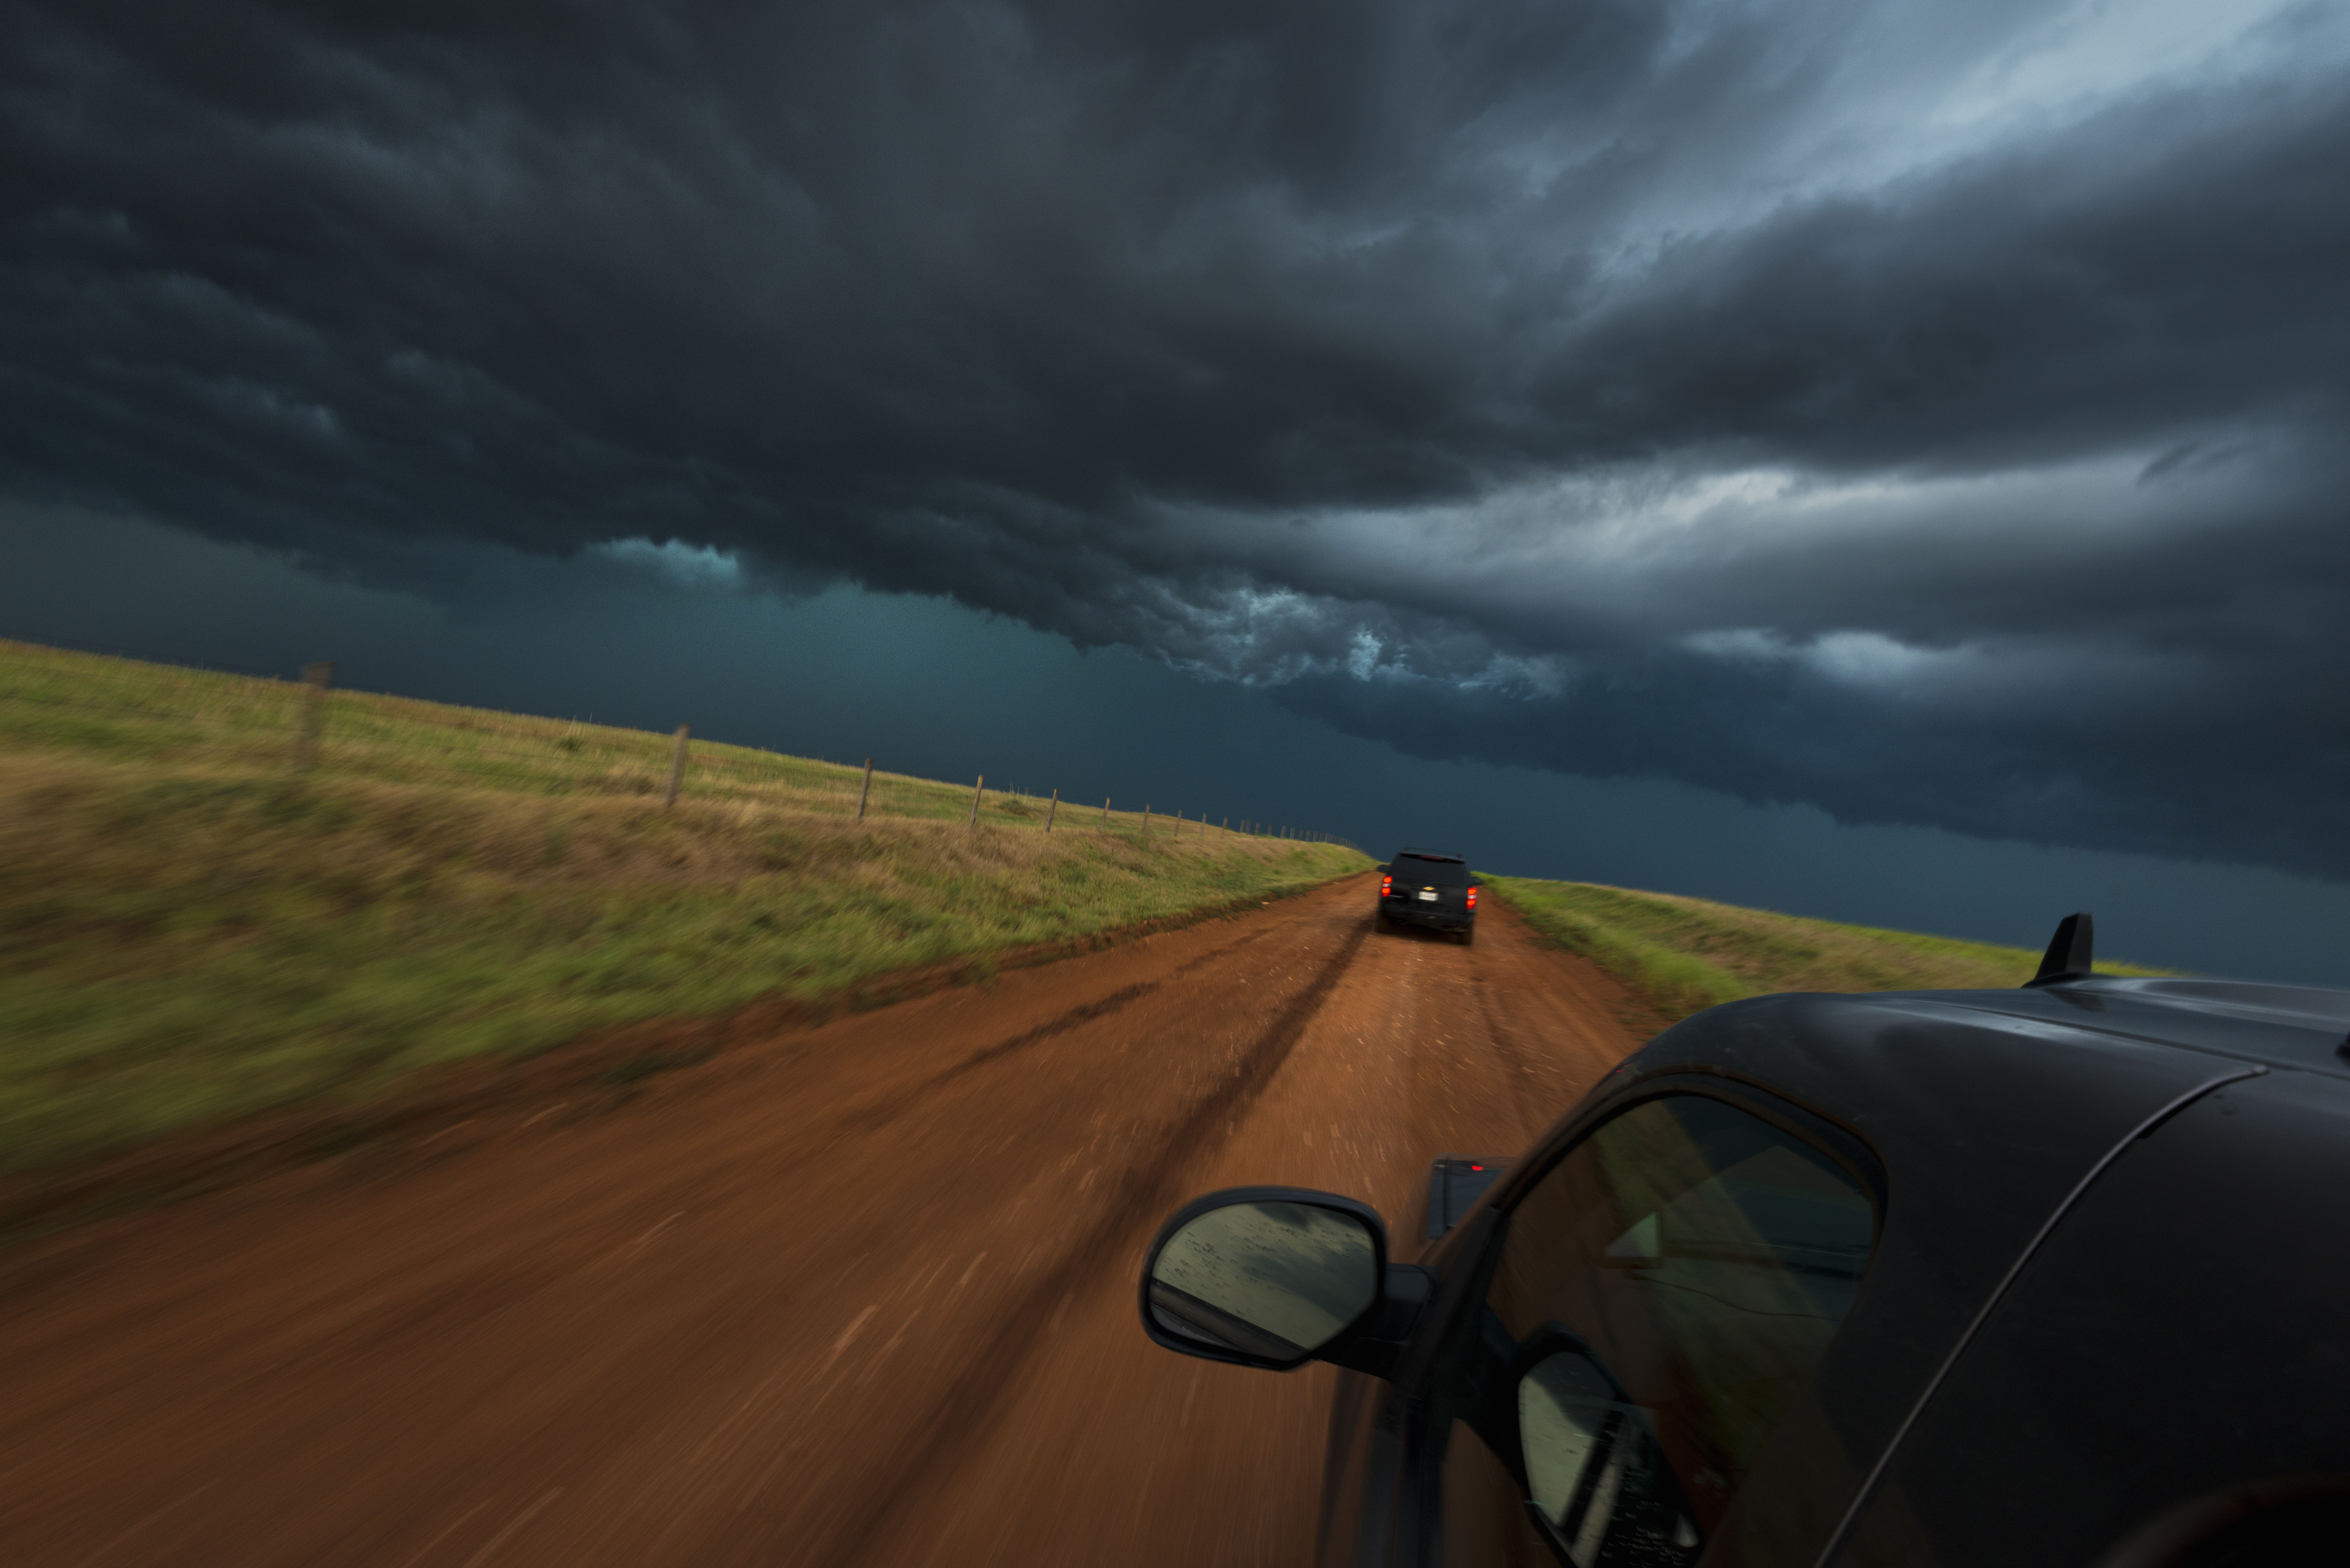 What Tornado Damage Coverage You Need